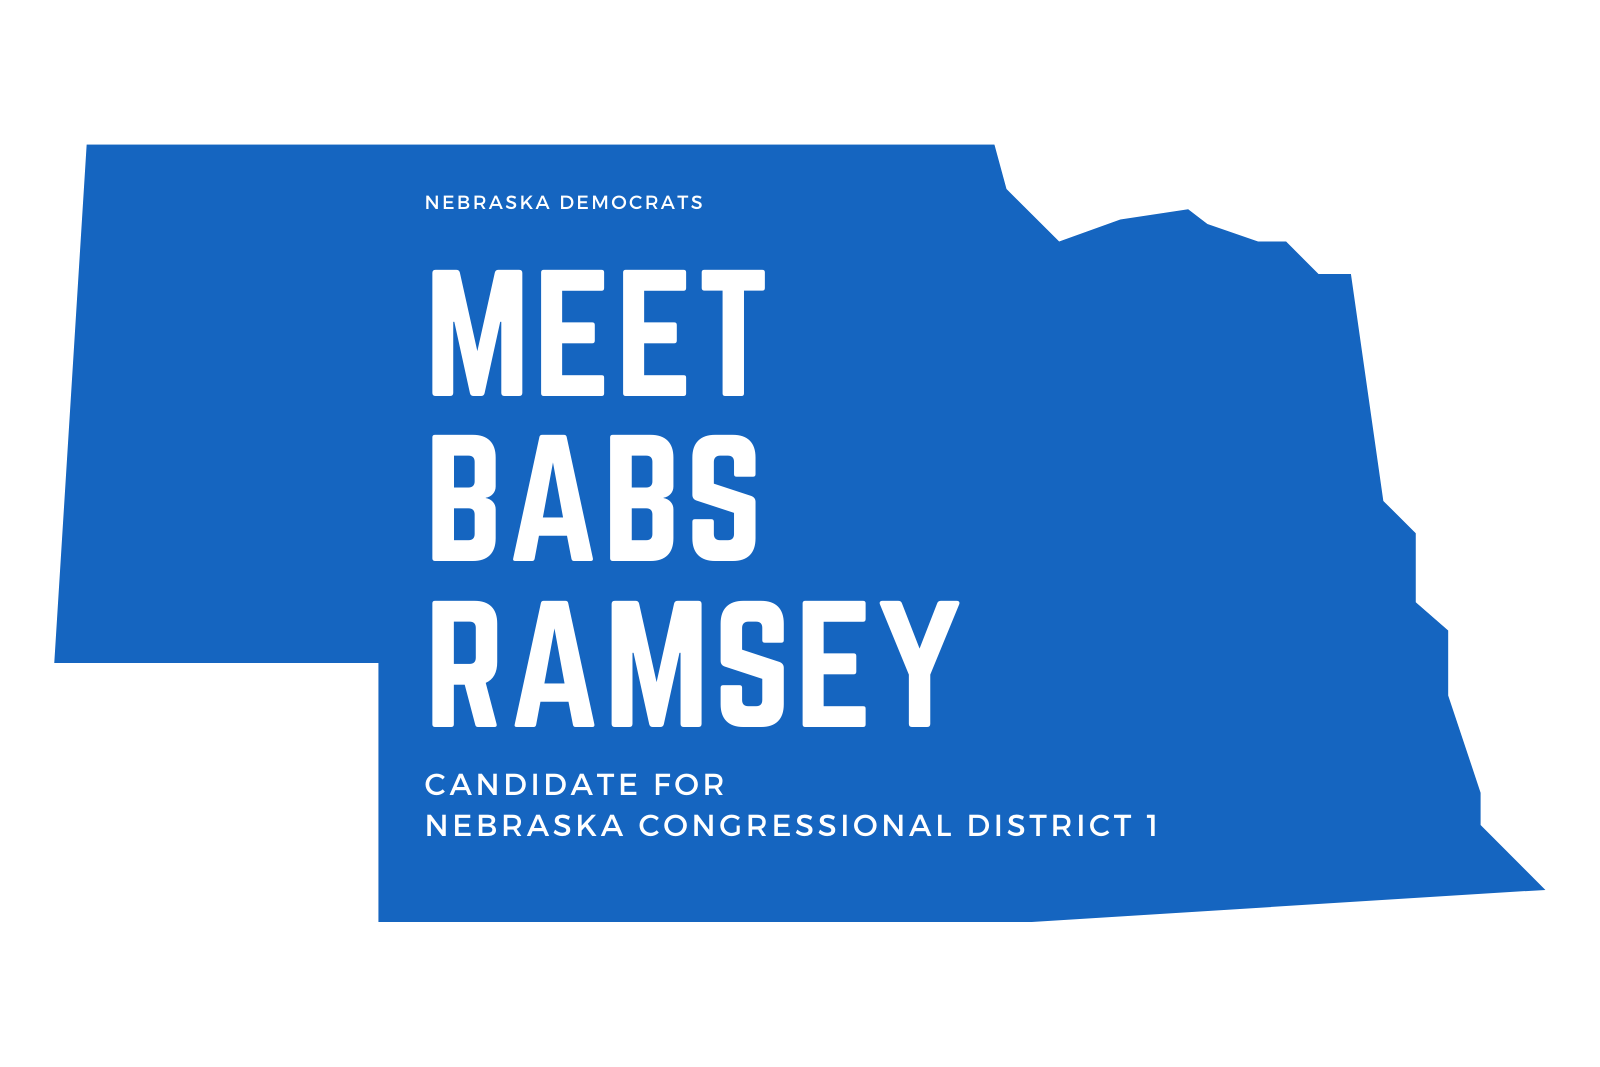 Meet Babs Ramsey, Candidate for NE Congressional District 1